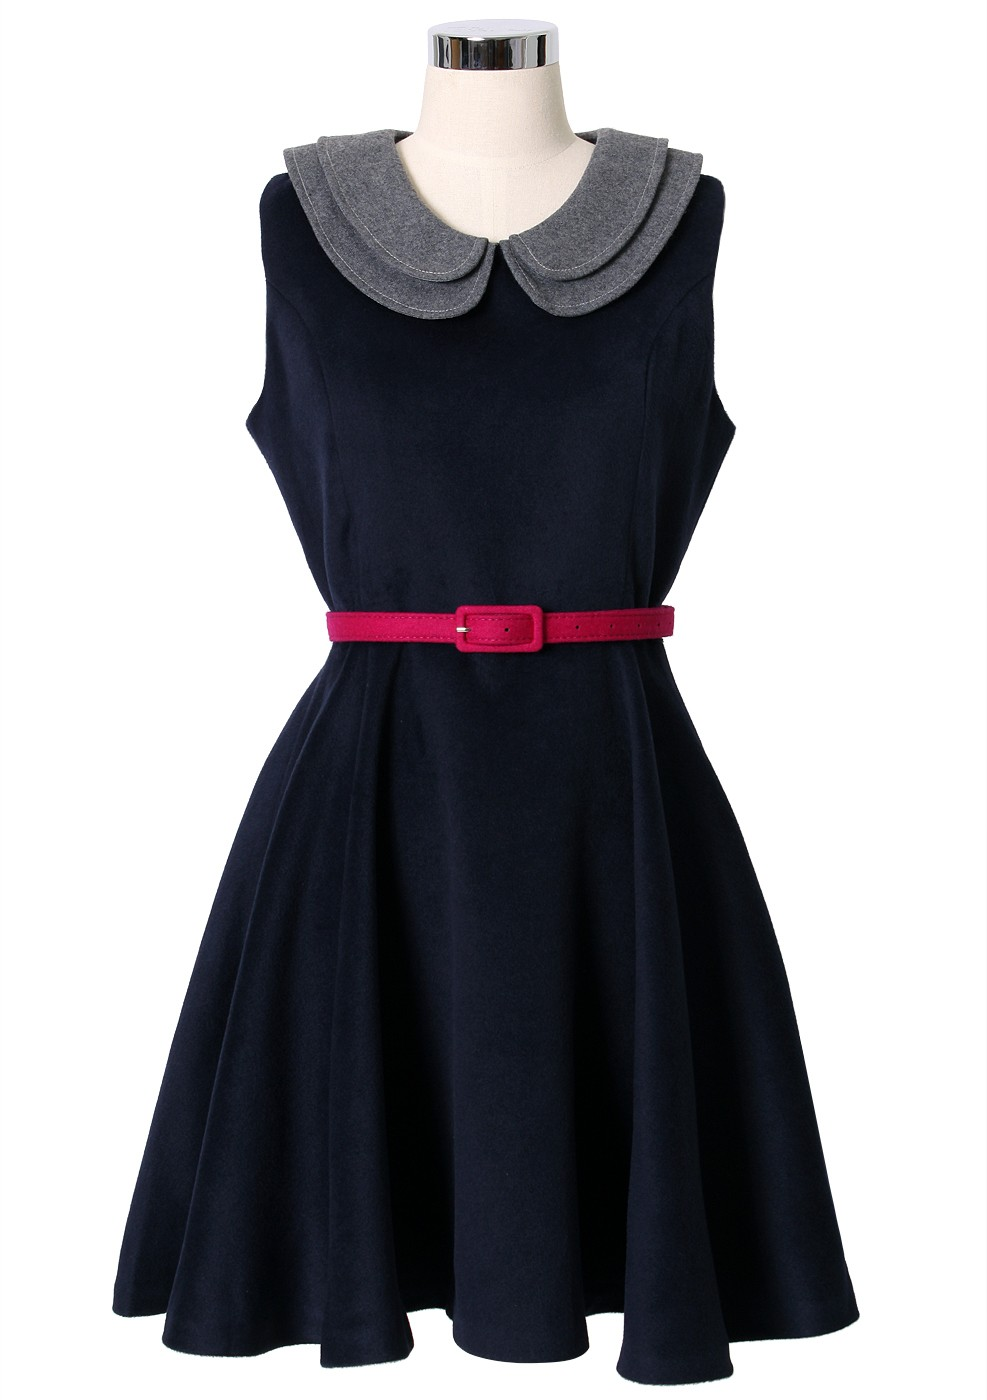 Navy blue belted dress with